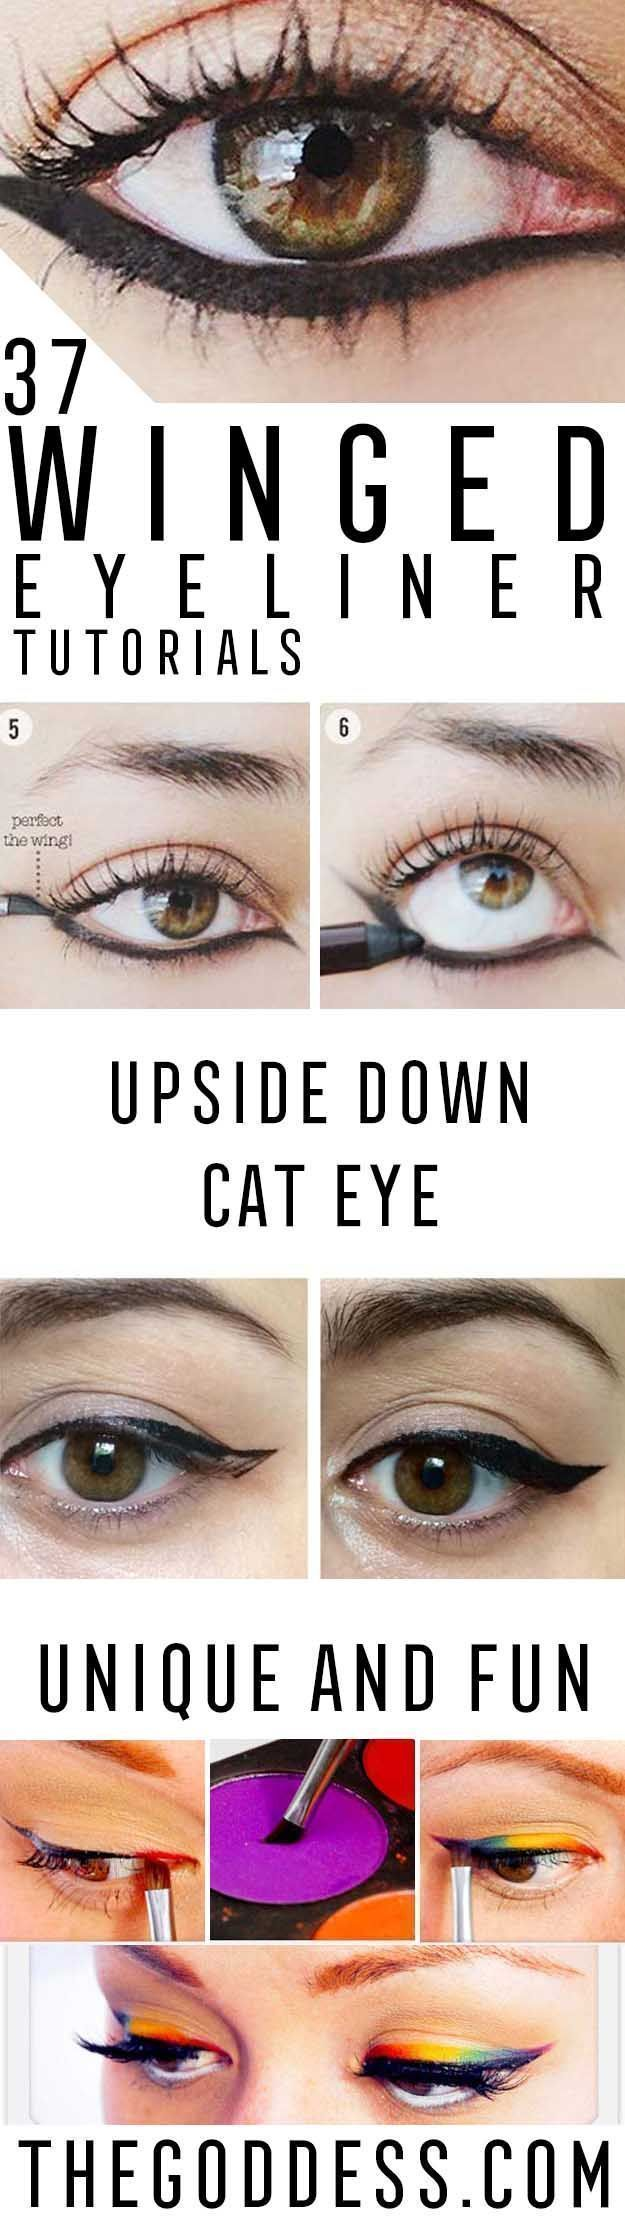 Winged Eyeliner Tutorials - Easy Step By Step Tutorials For Beginners and Hacks Using Tape and a Spoon, Liquid Liner, Thing Pencil Tricks and Awesome Guides for Hooded Eyes - Short Video Tutorial for Perfect Simple Dramatic Looks - thegoddess.com/winged-eyeliner-tutorials #wingedlinereasy #wingedlinerhacks #dramaticwingedliner #wingedlinersimple #wingedlinerforhoodedeyes #wingedlinertricks